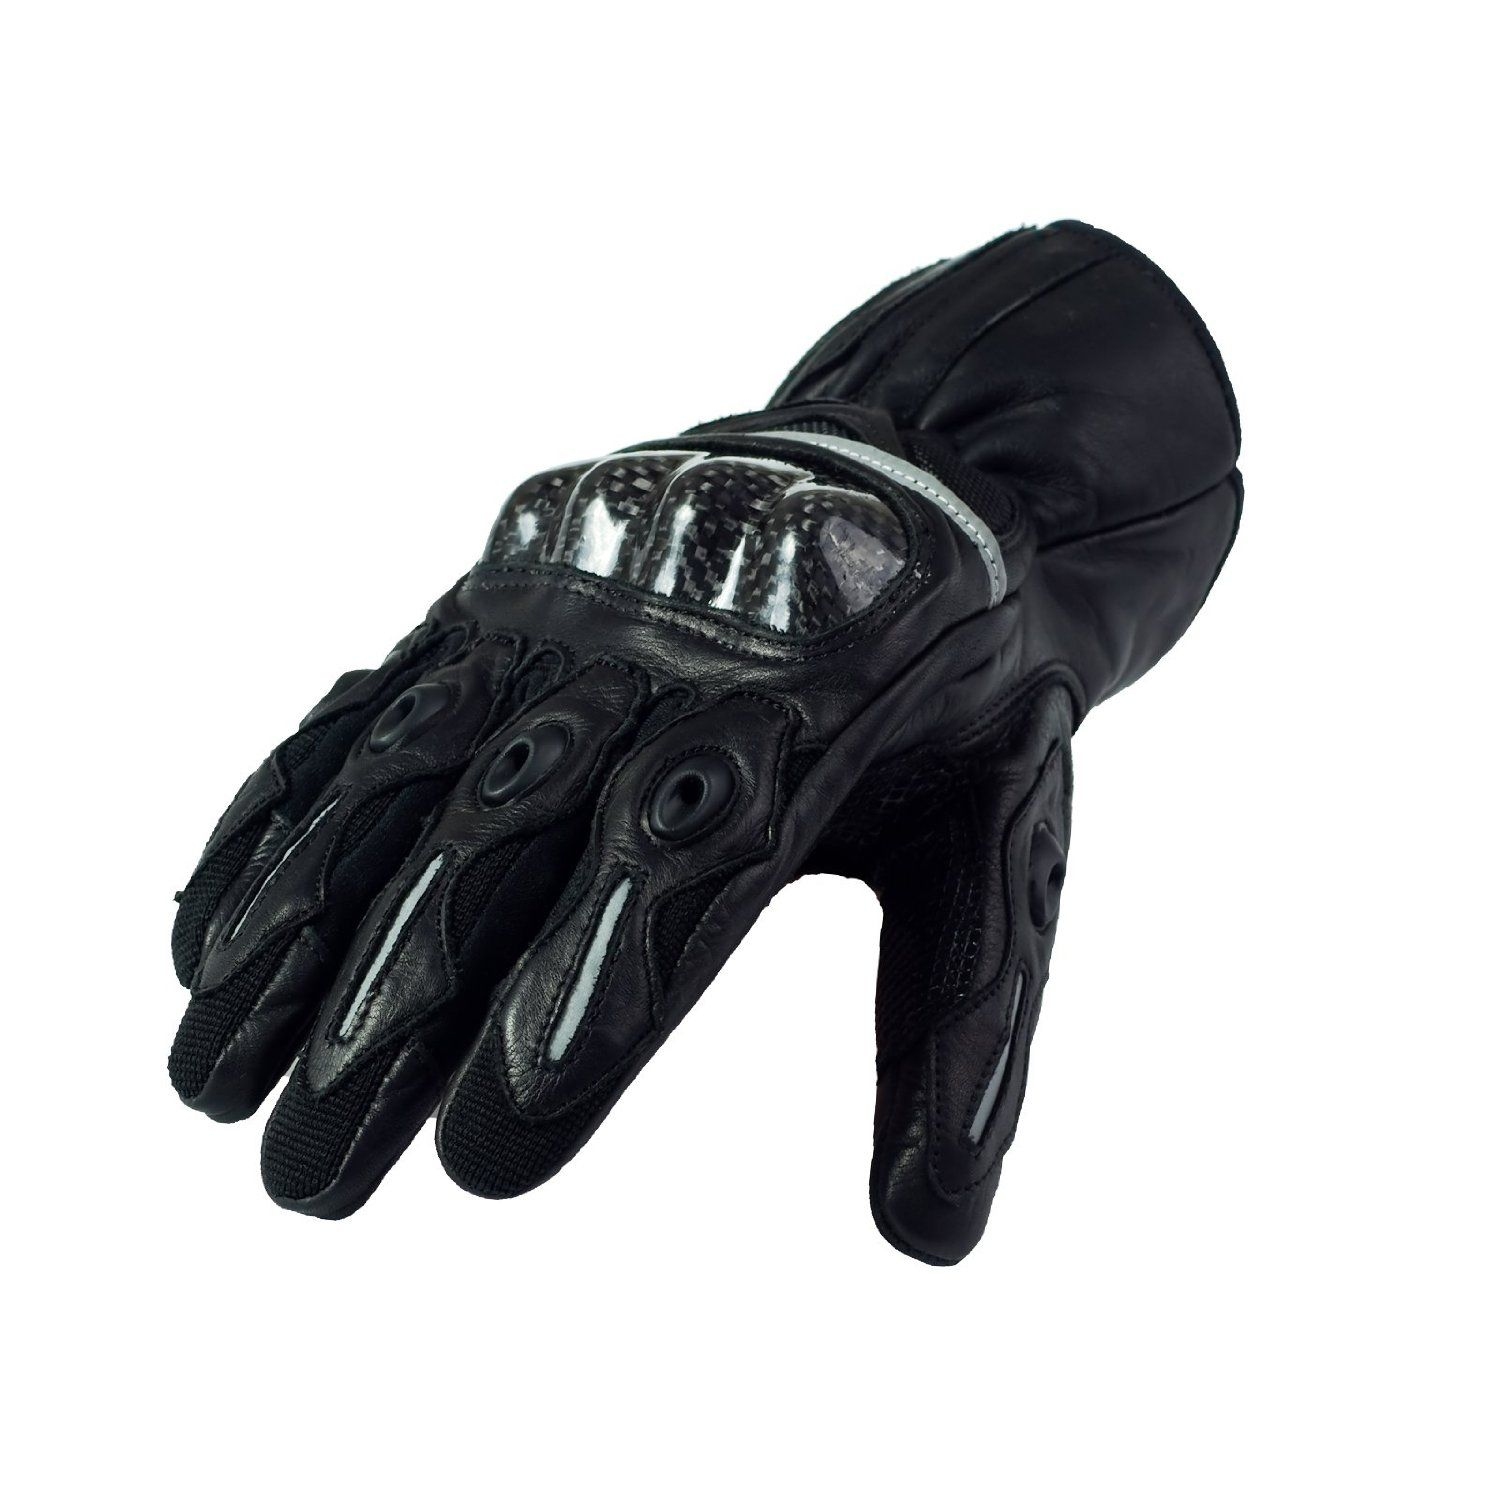 36.00 Raven Carbon Racer Gloves. To buy this product